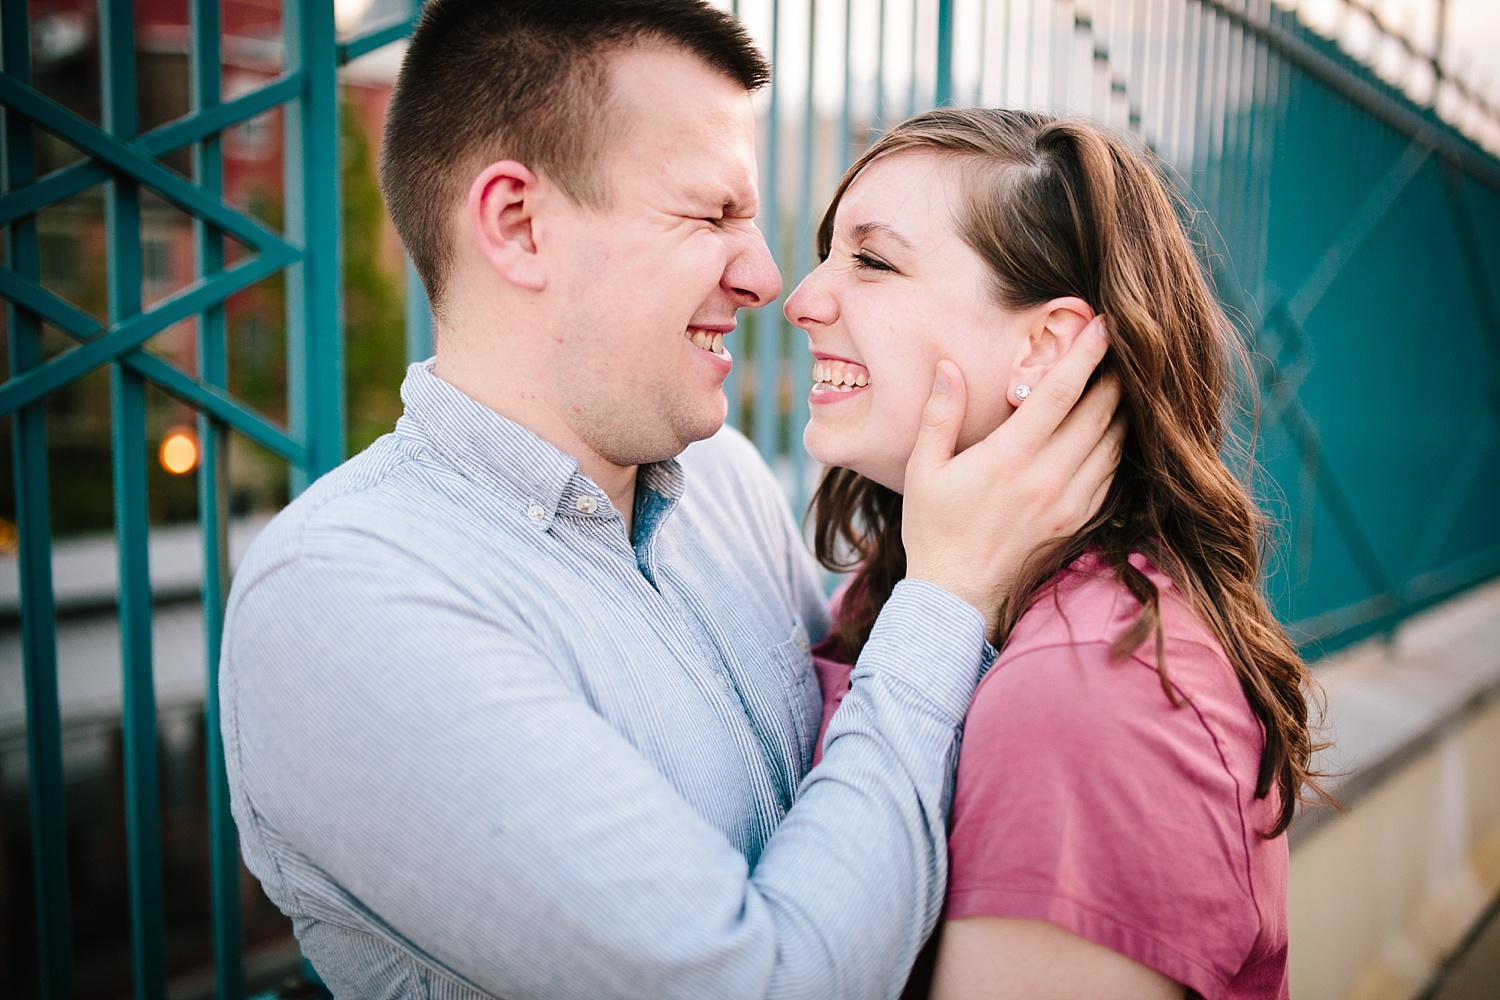 lizandbrandon_oldcity_philadelphia_elfrethsalley_engagement_session_image036.jpg